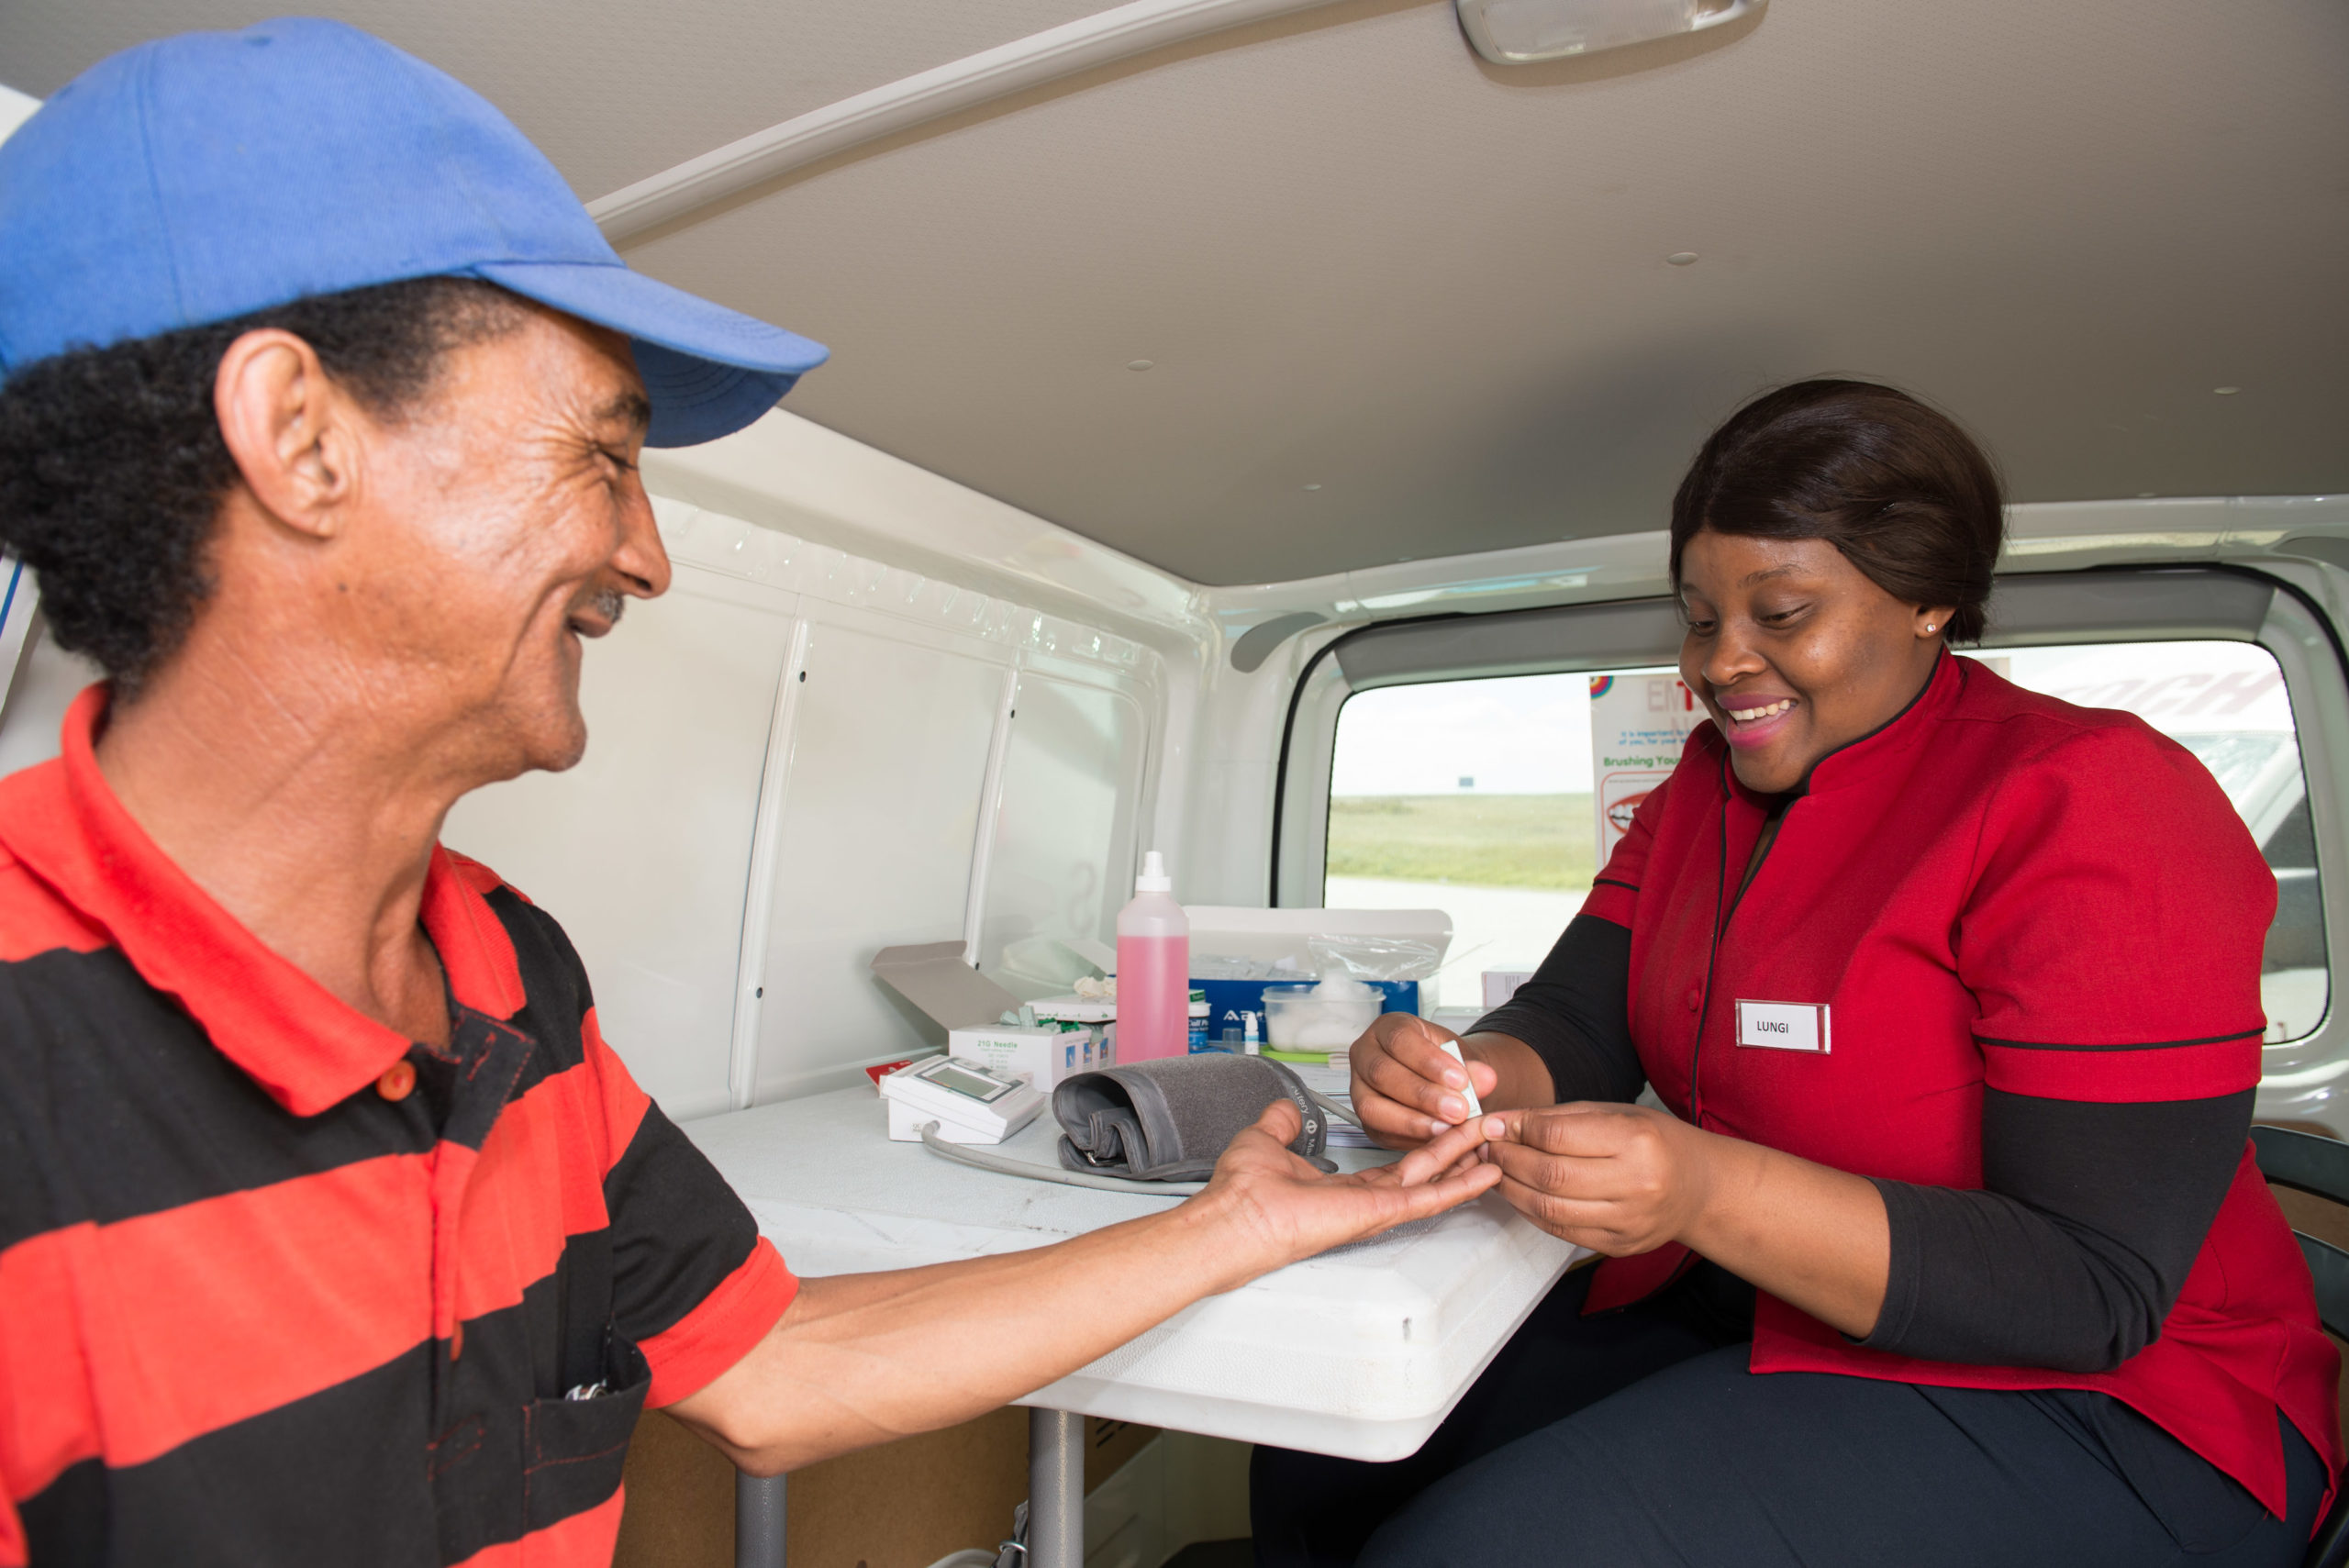 A truck driver takes advantage of the free health screenings on offer as part of Engen's annual Driver Wellness programme which rolled out at 24 Engen Truck Stops in five provinces from April to November 2017.